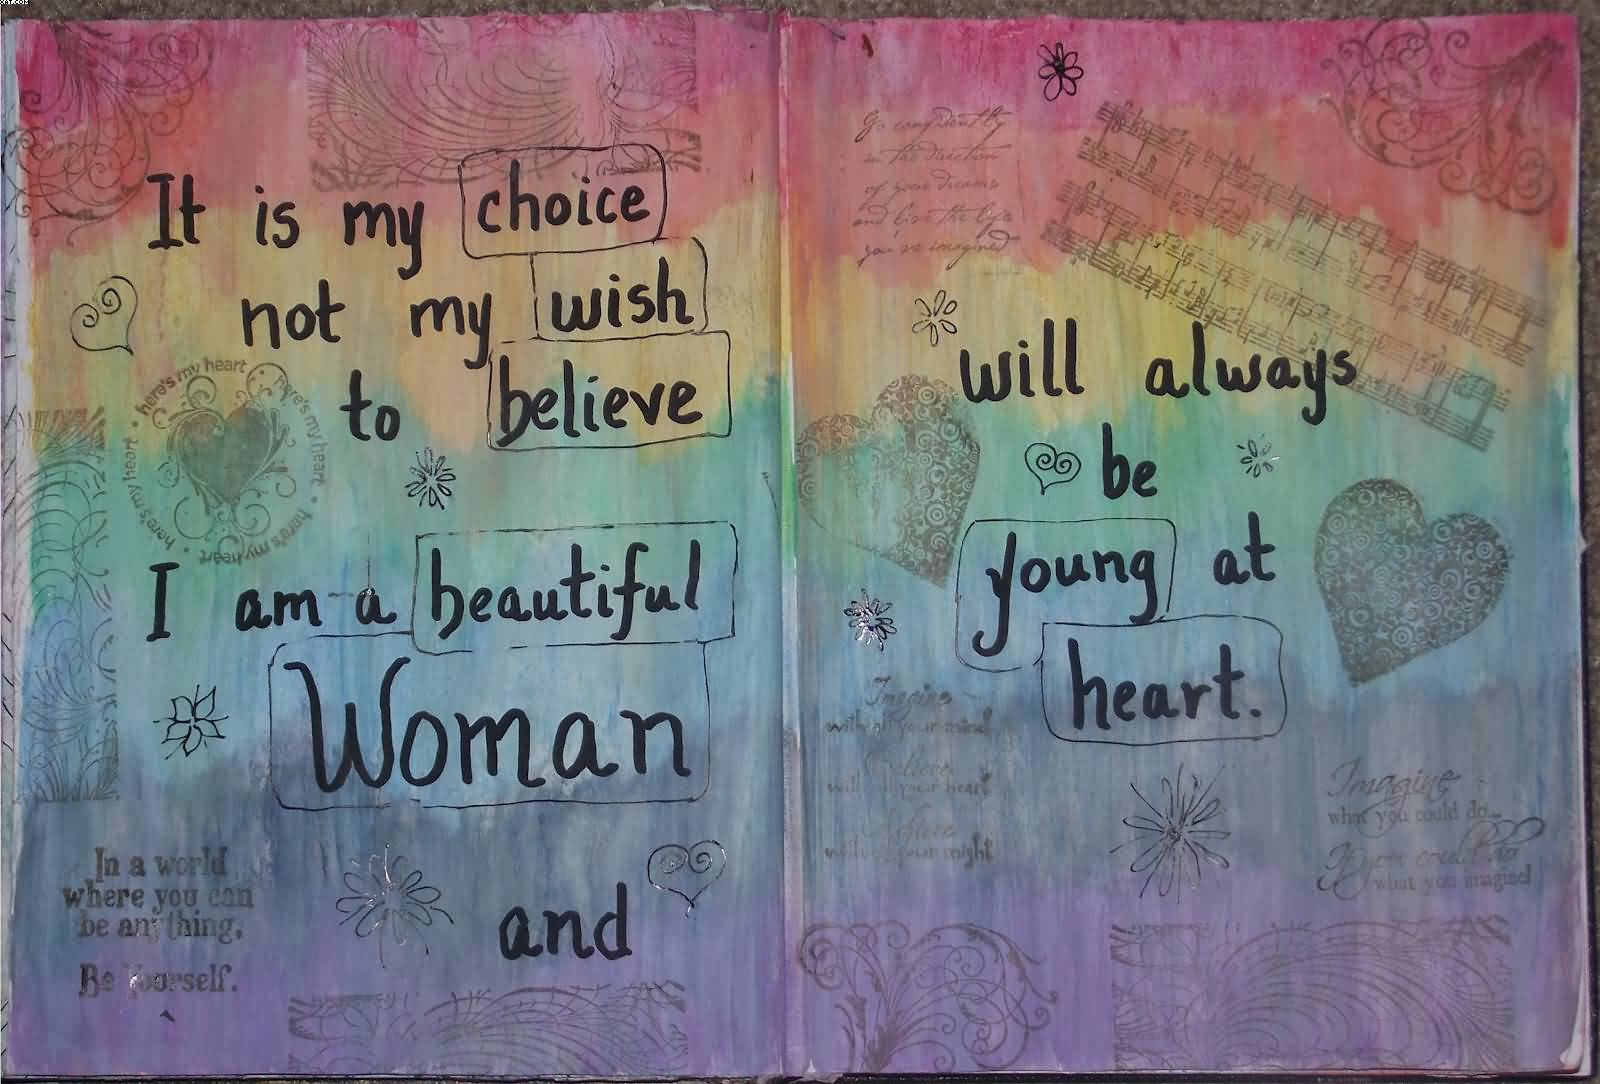 IT IS MY CHOICE Not My Wish To believe I Am A Beautiful Woman And Will Always be Yound At Heart.